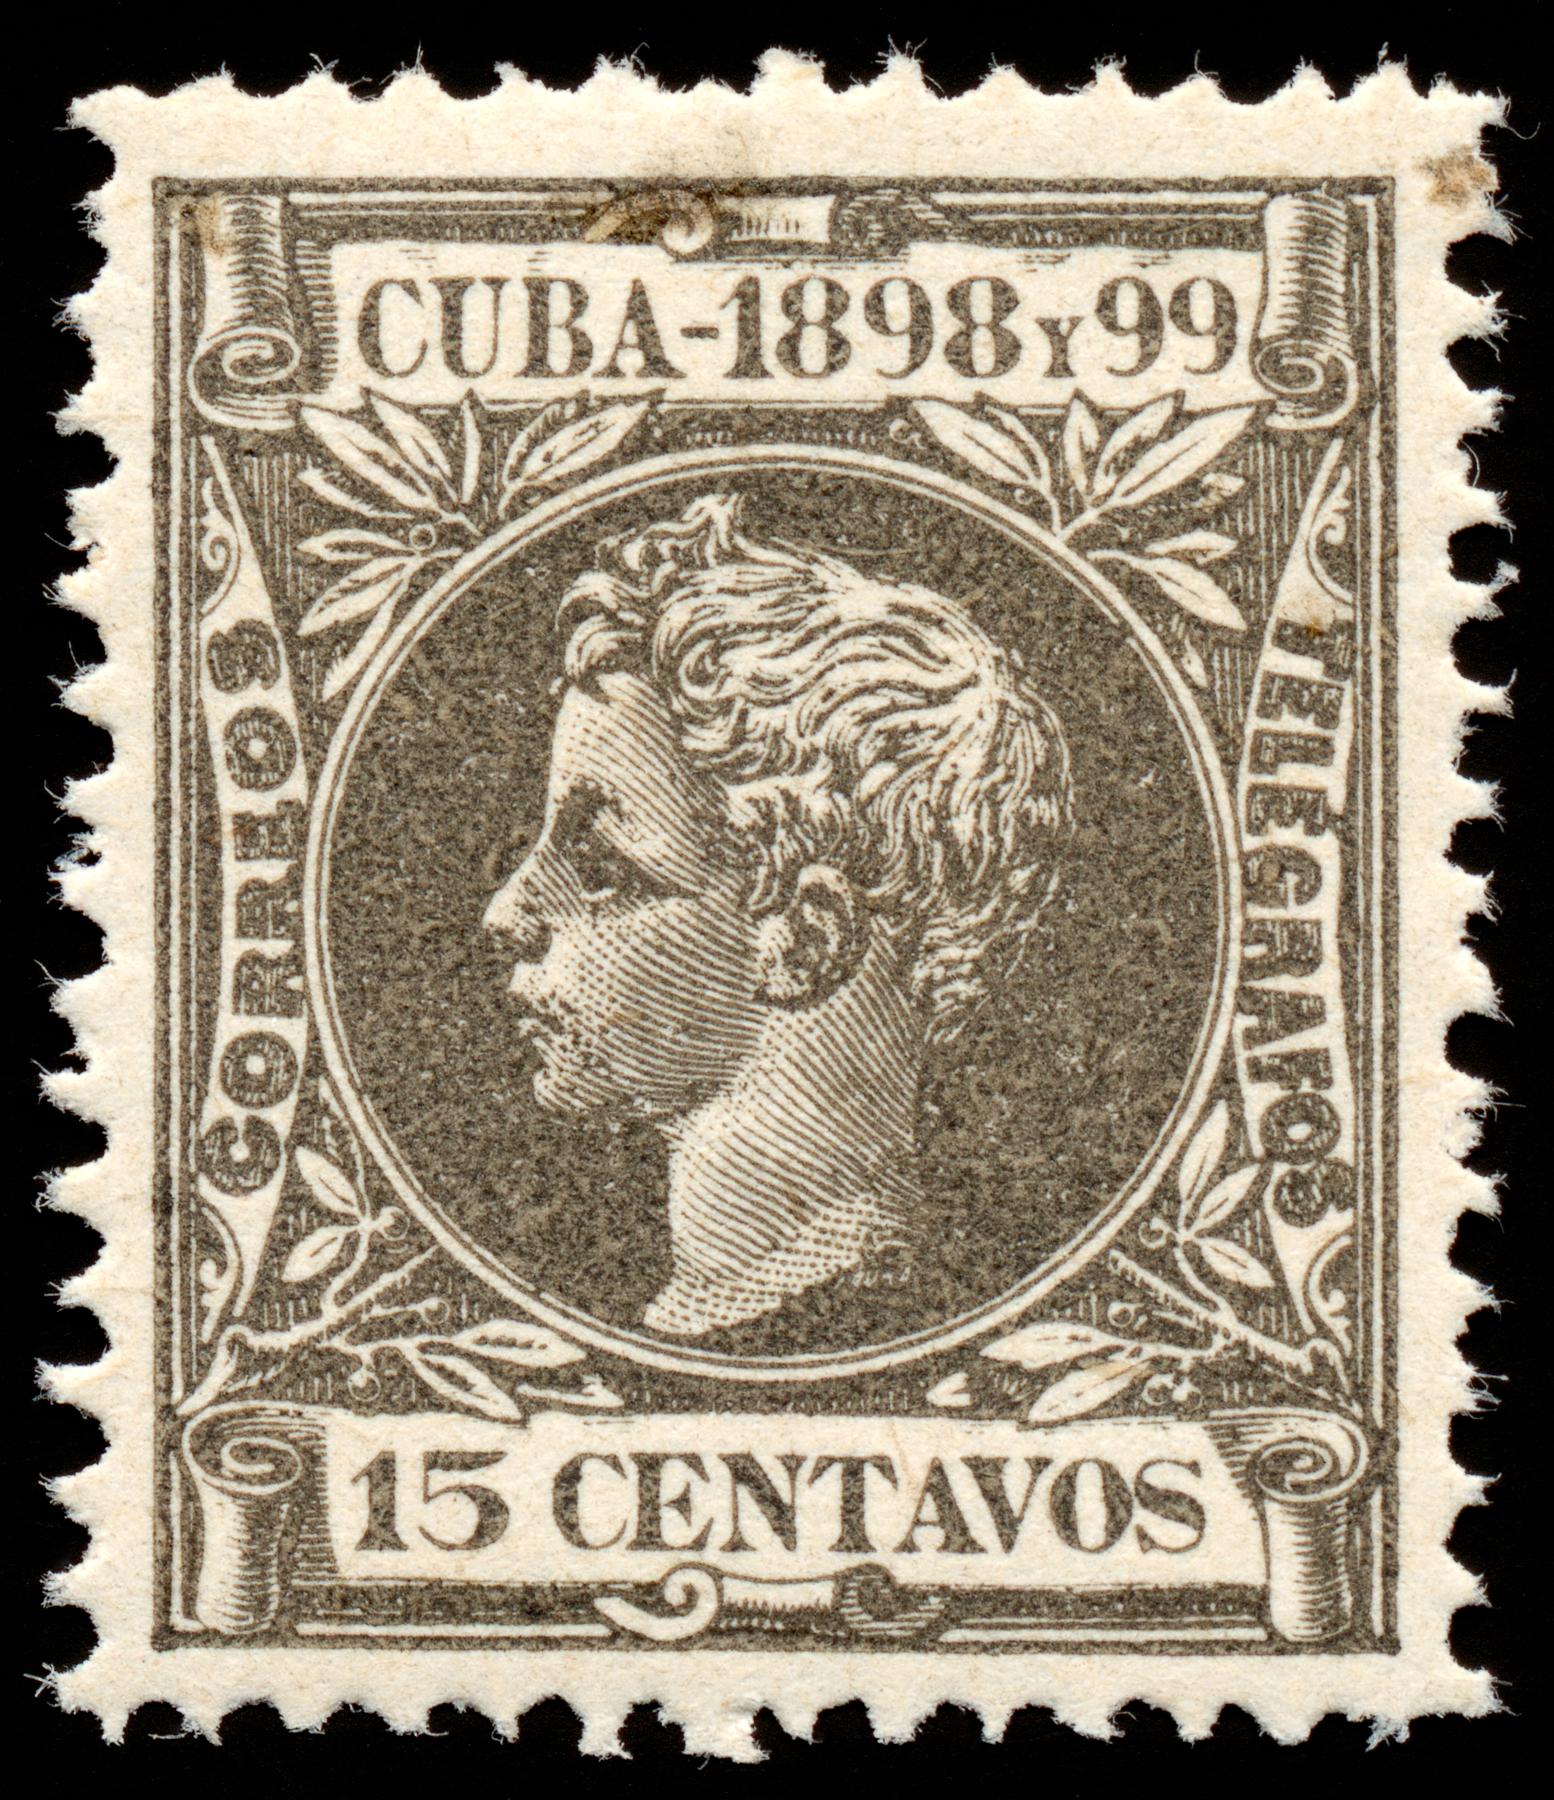 Grey king alfonso xiii stamp photo